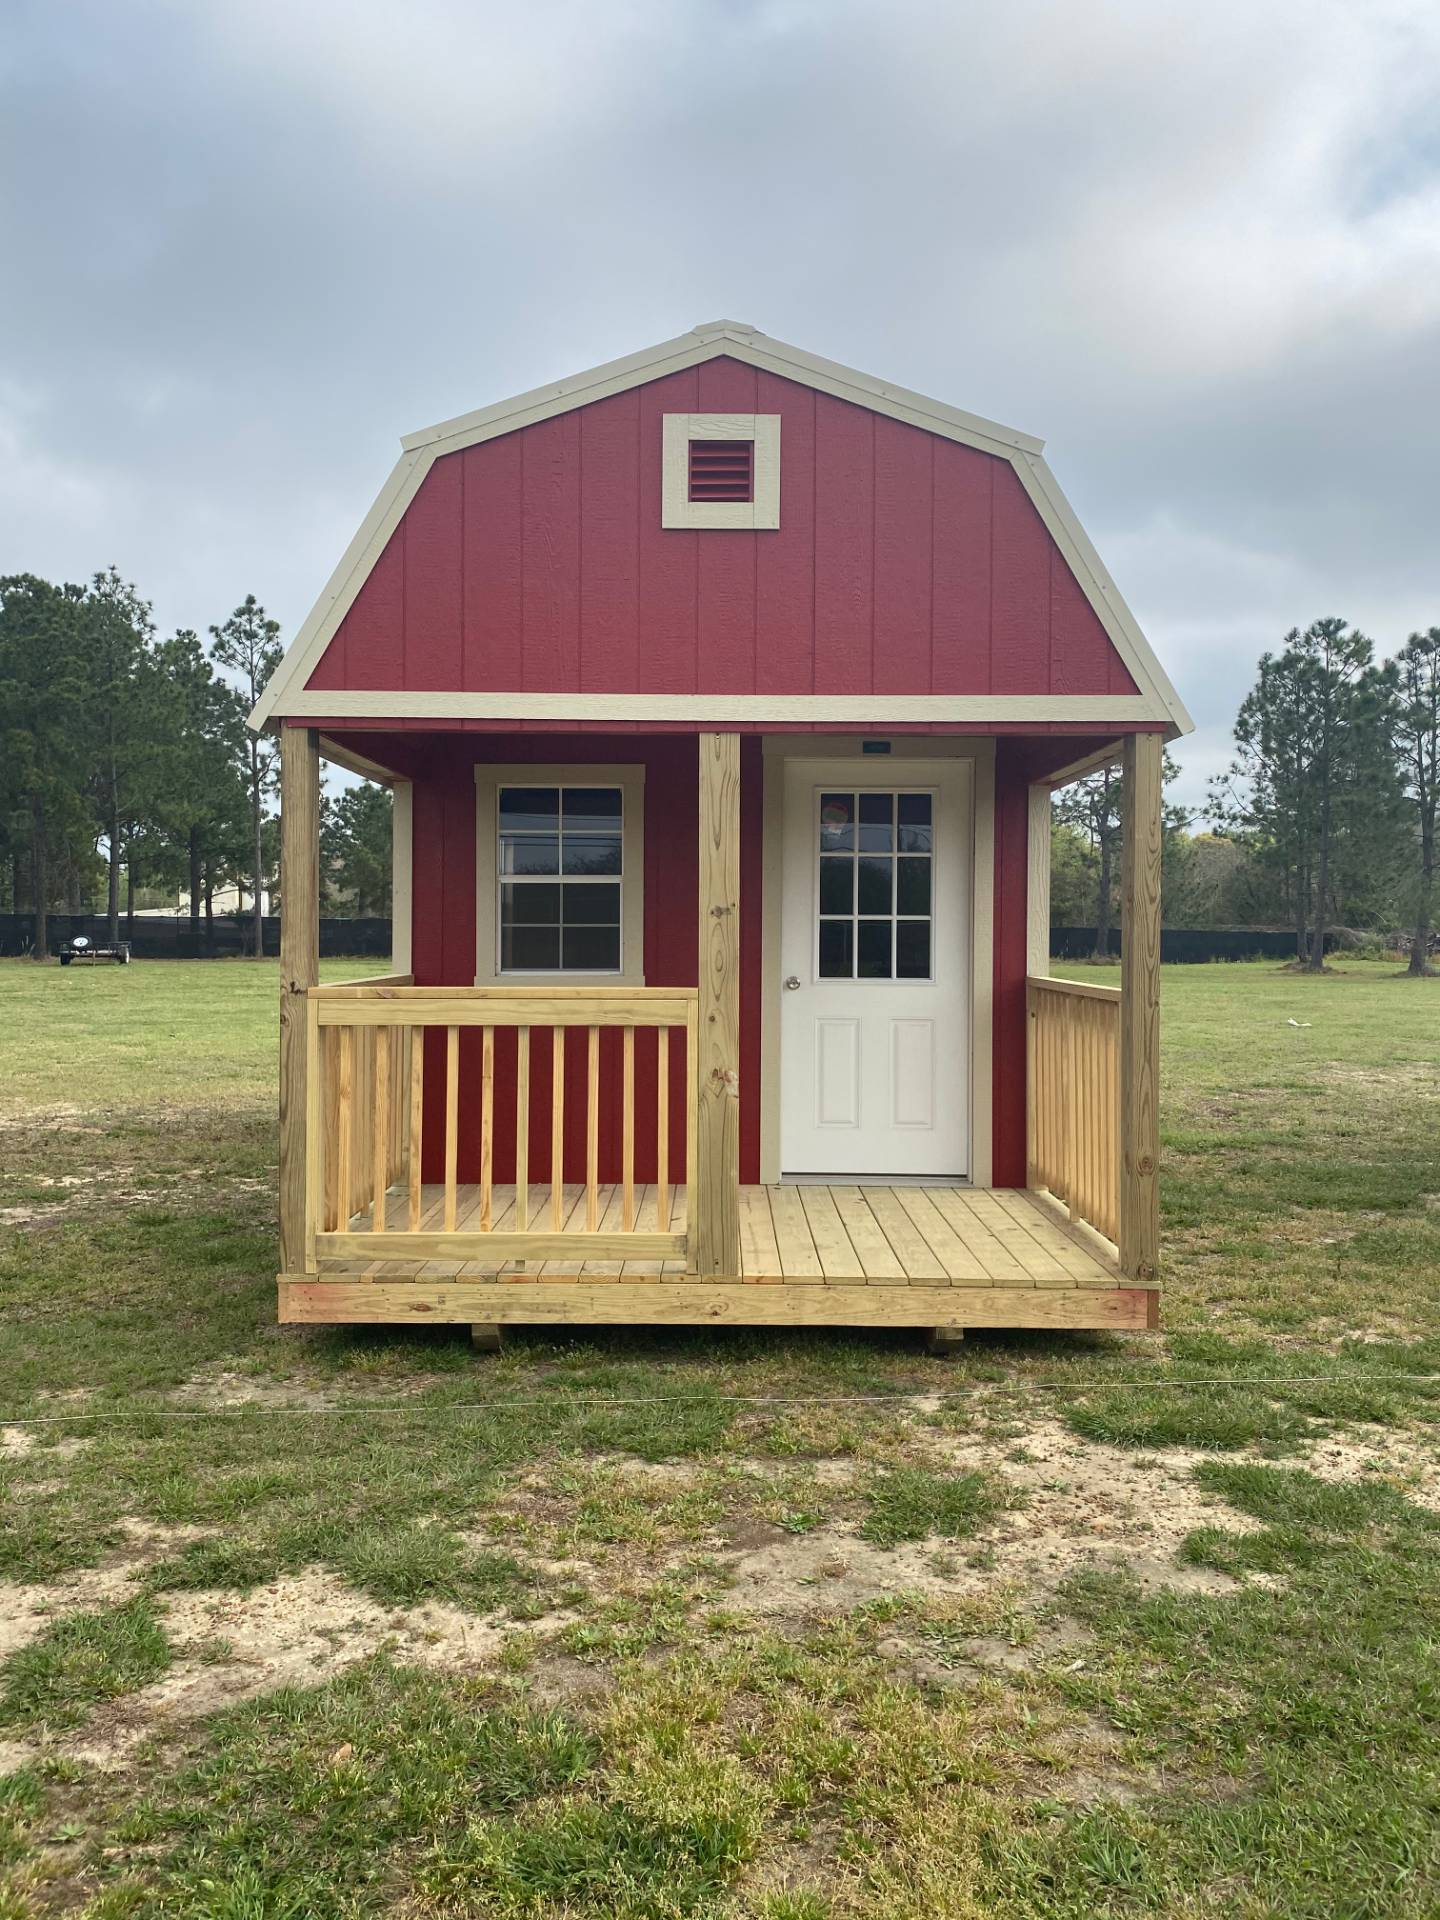 2019 PREMIER PORTABLE BUILDINGS ULBC - URETHANE LOFTED BARN CABIN in Tifton, Georgia - Photo 1